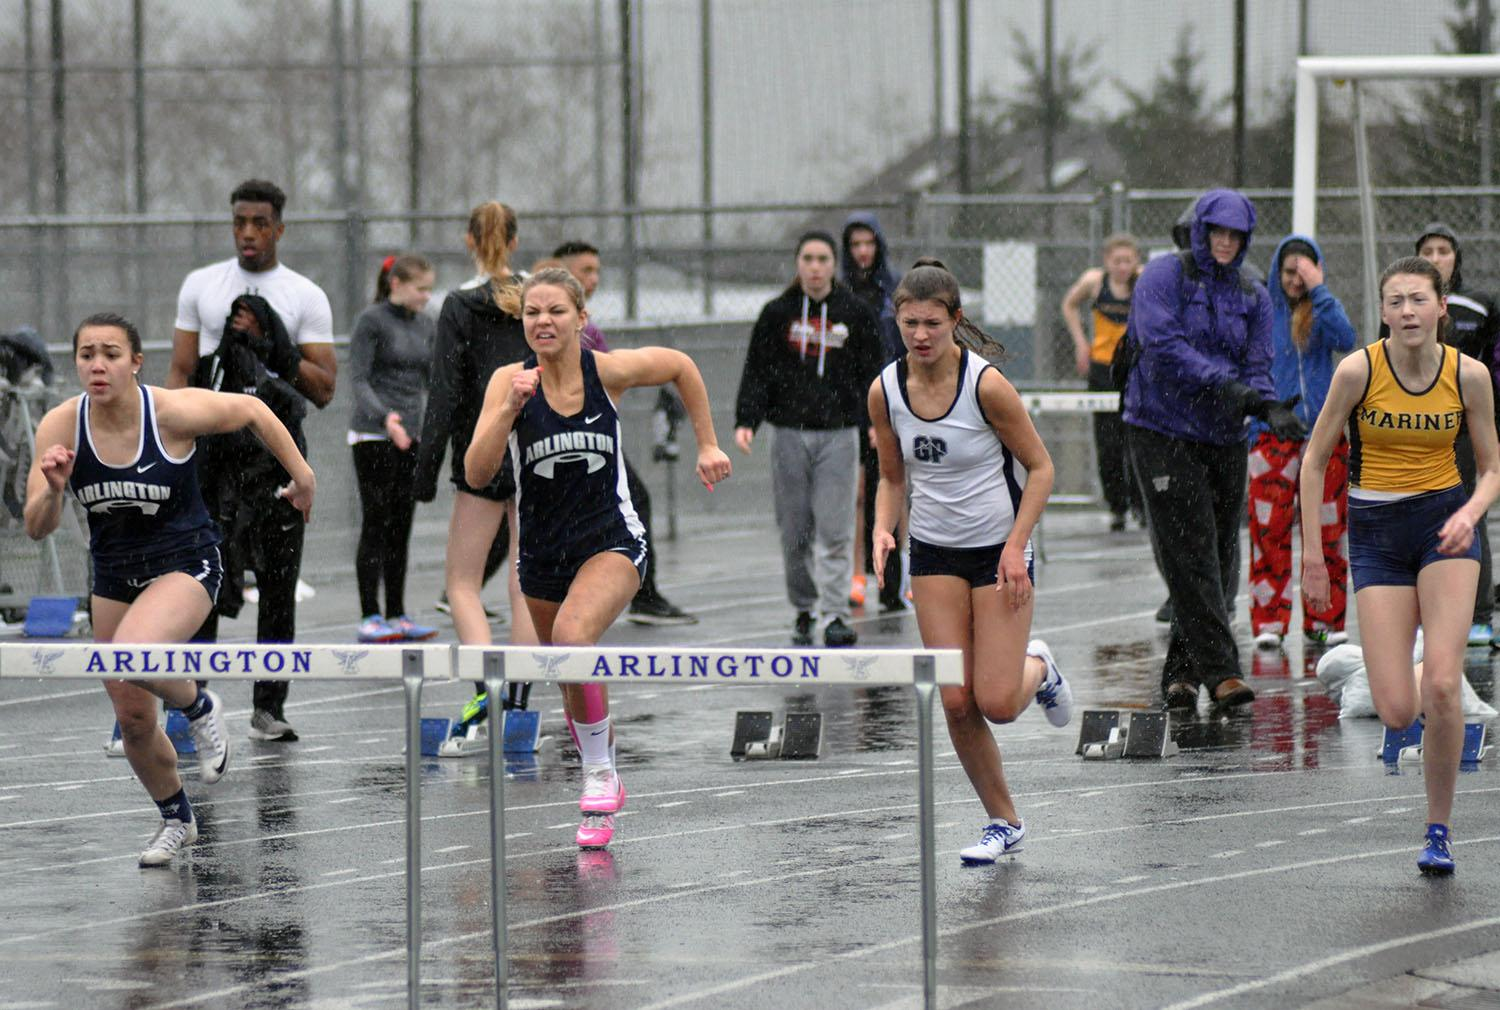 Female athletes compete in a hurdles competition.